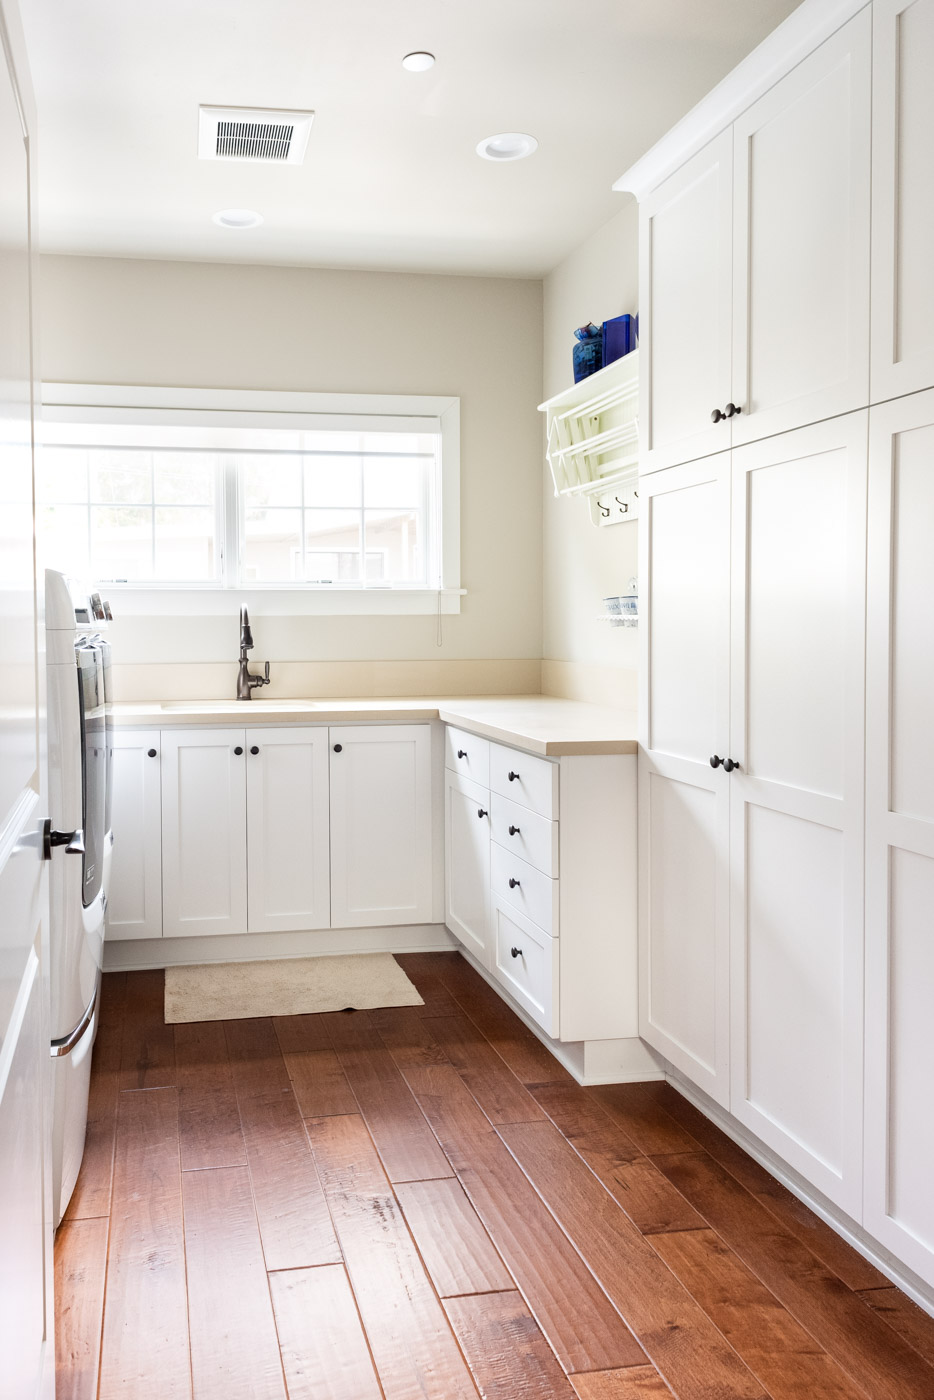 Coastal Craftsman home with custom white painted laundry room cabinets